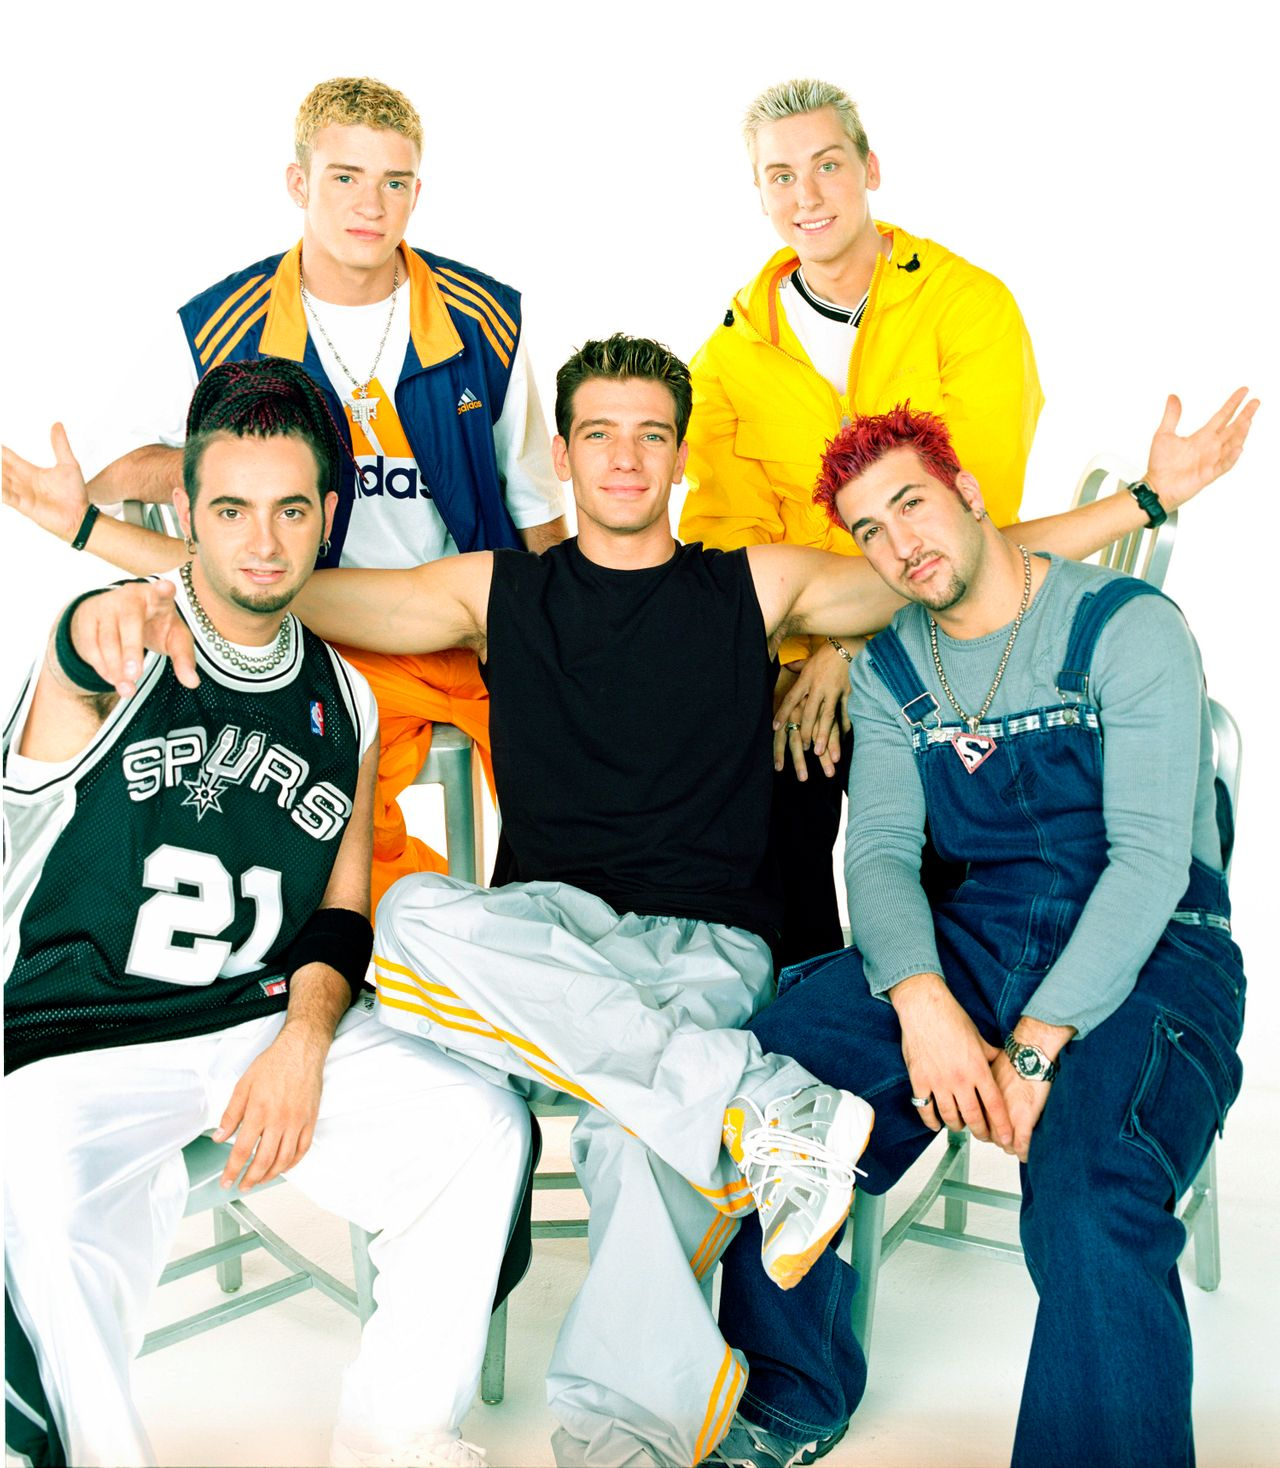 JC Chasez, Chris Kirkpatrick,Lance Bass, JustinTimberlake, and Joey Fatone pose for an August 1999 portrait in Los Angeles, California.